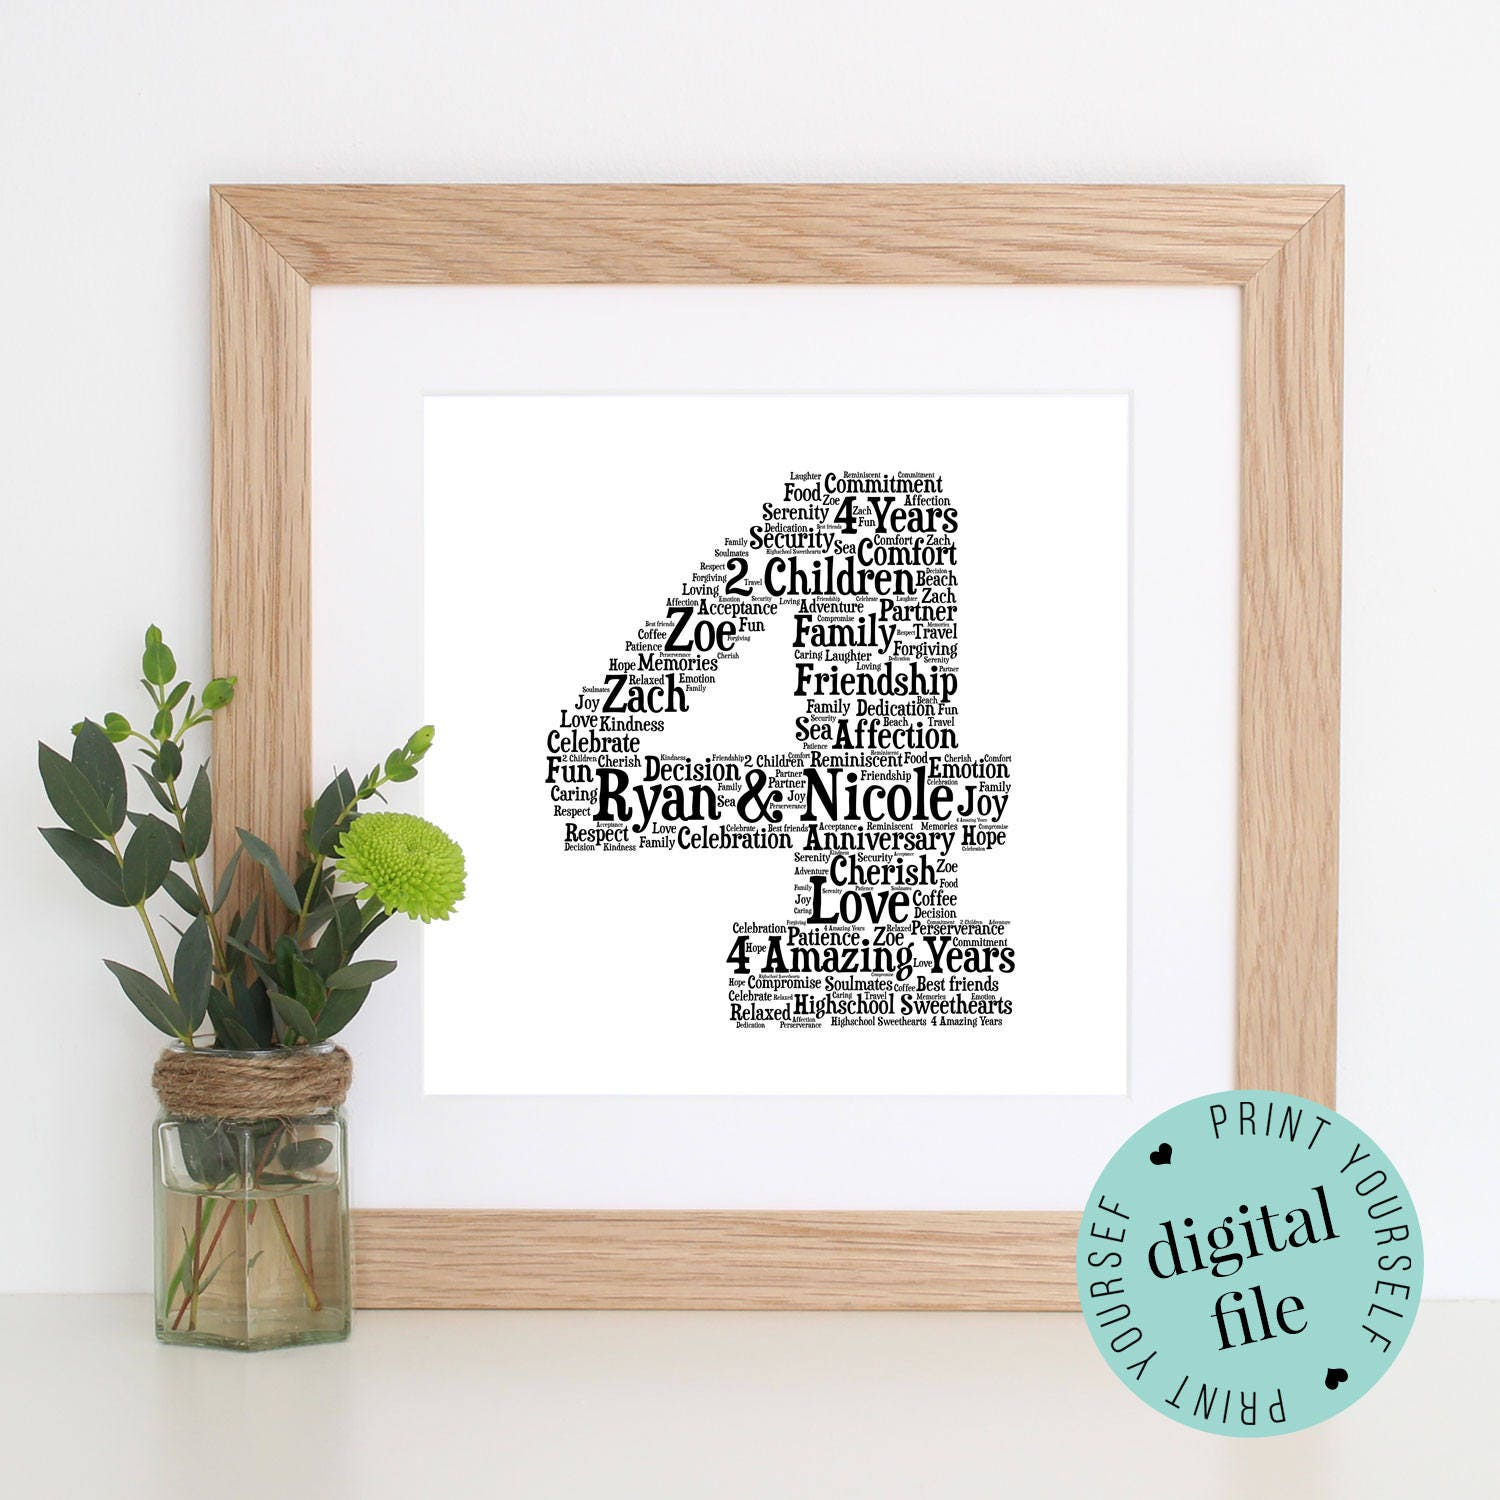 What Is 4th Wedding Anniversary Gift: Personalised 4th ANNIVERSARY GIFT Word Art 4th Wedding